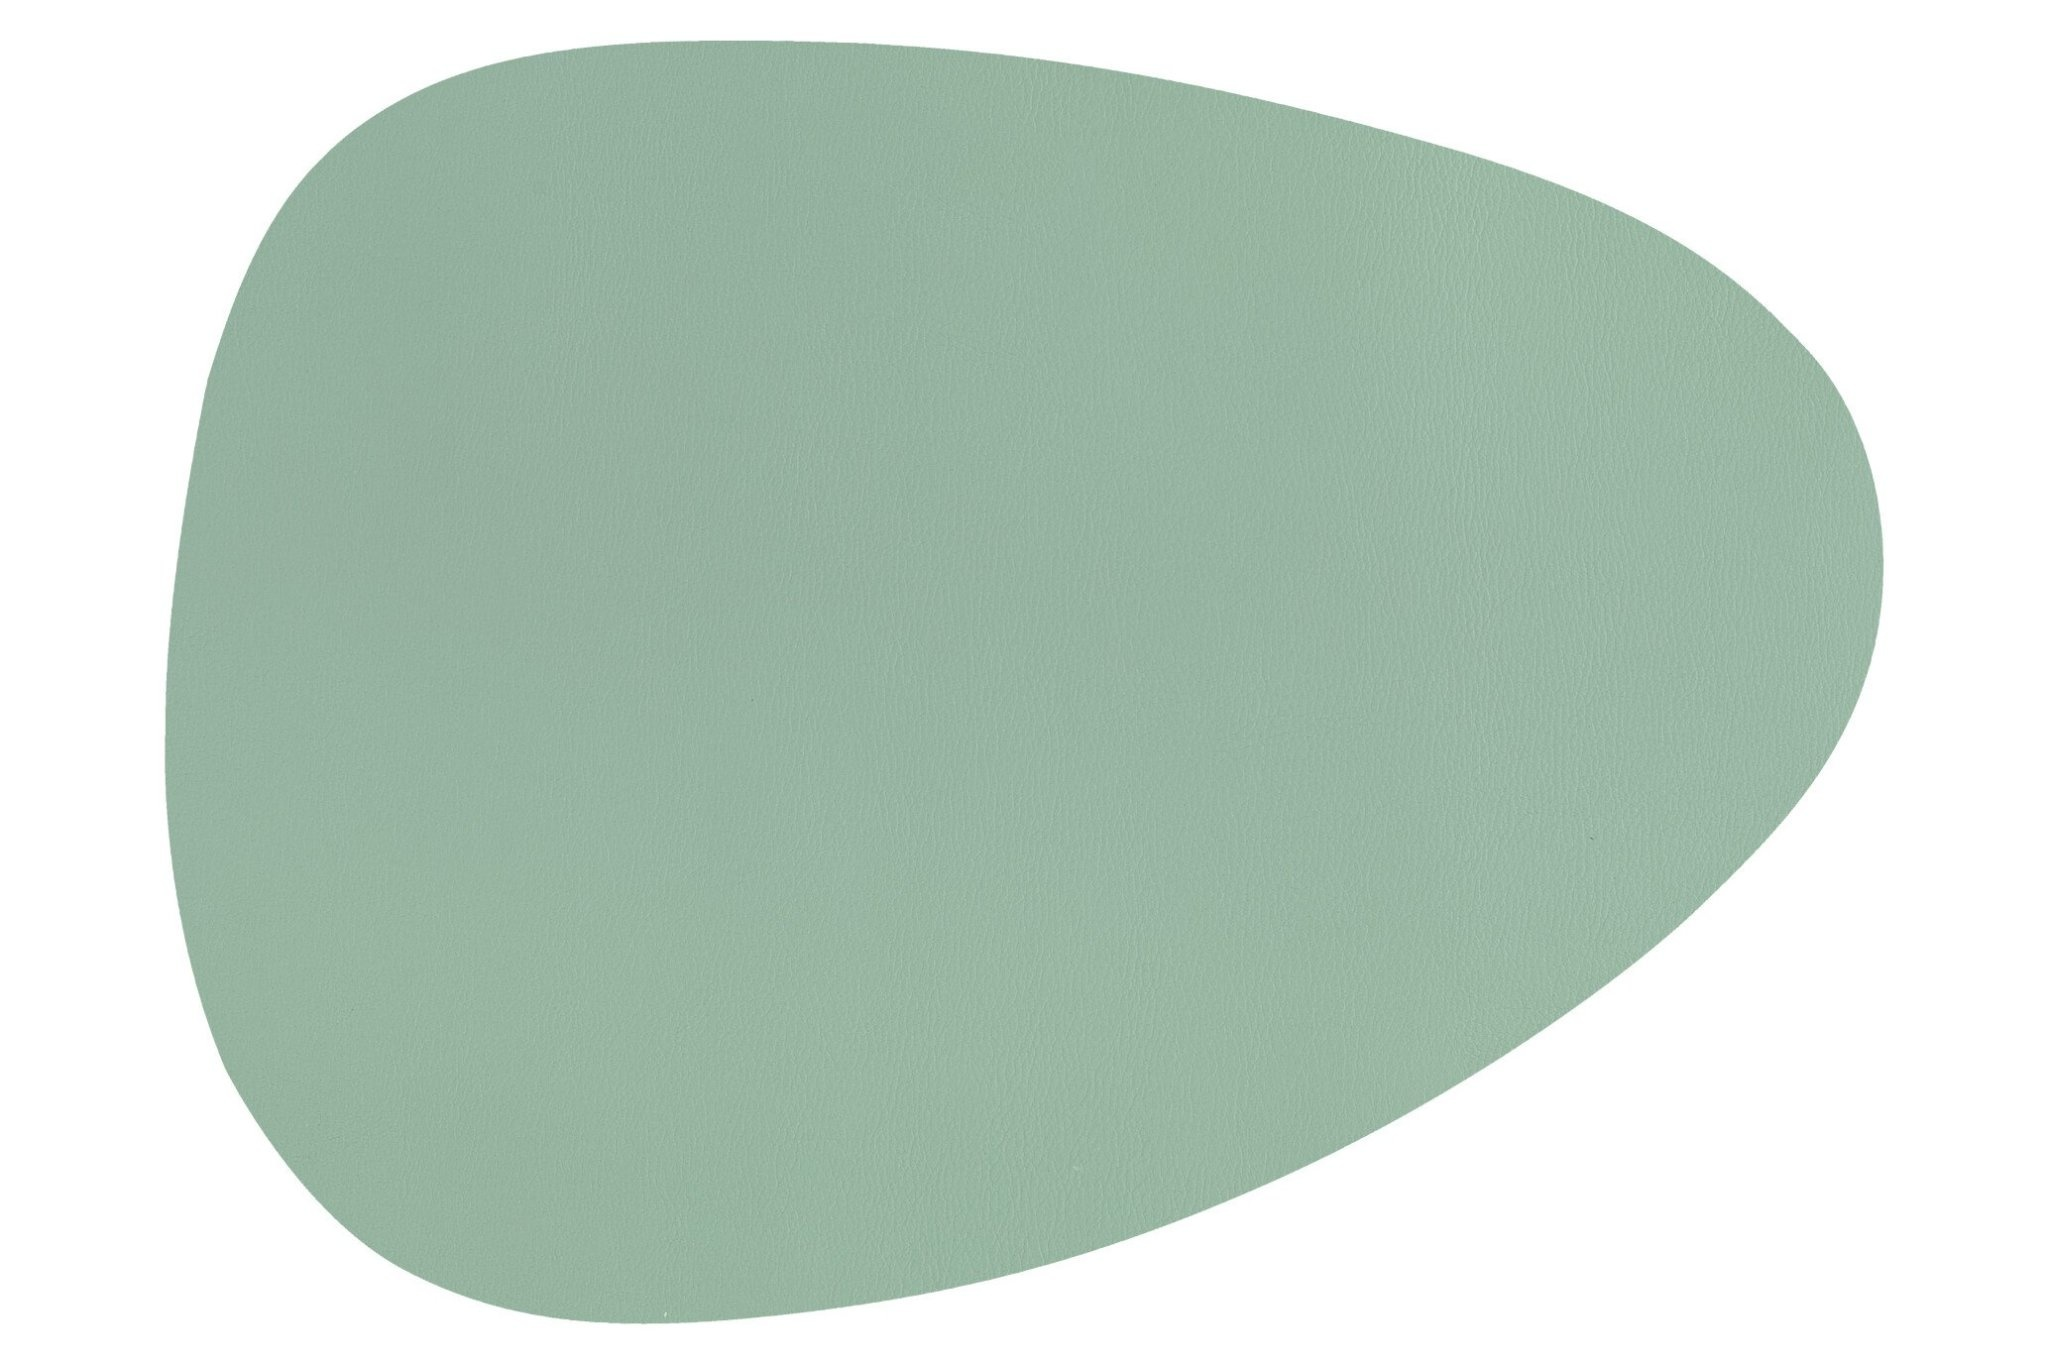 Placemat mint green leather look 32 x 43 cm